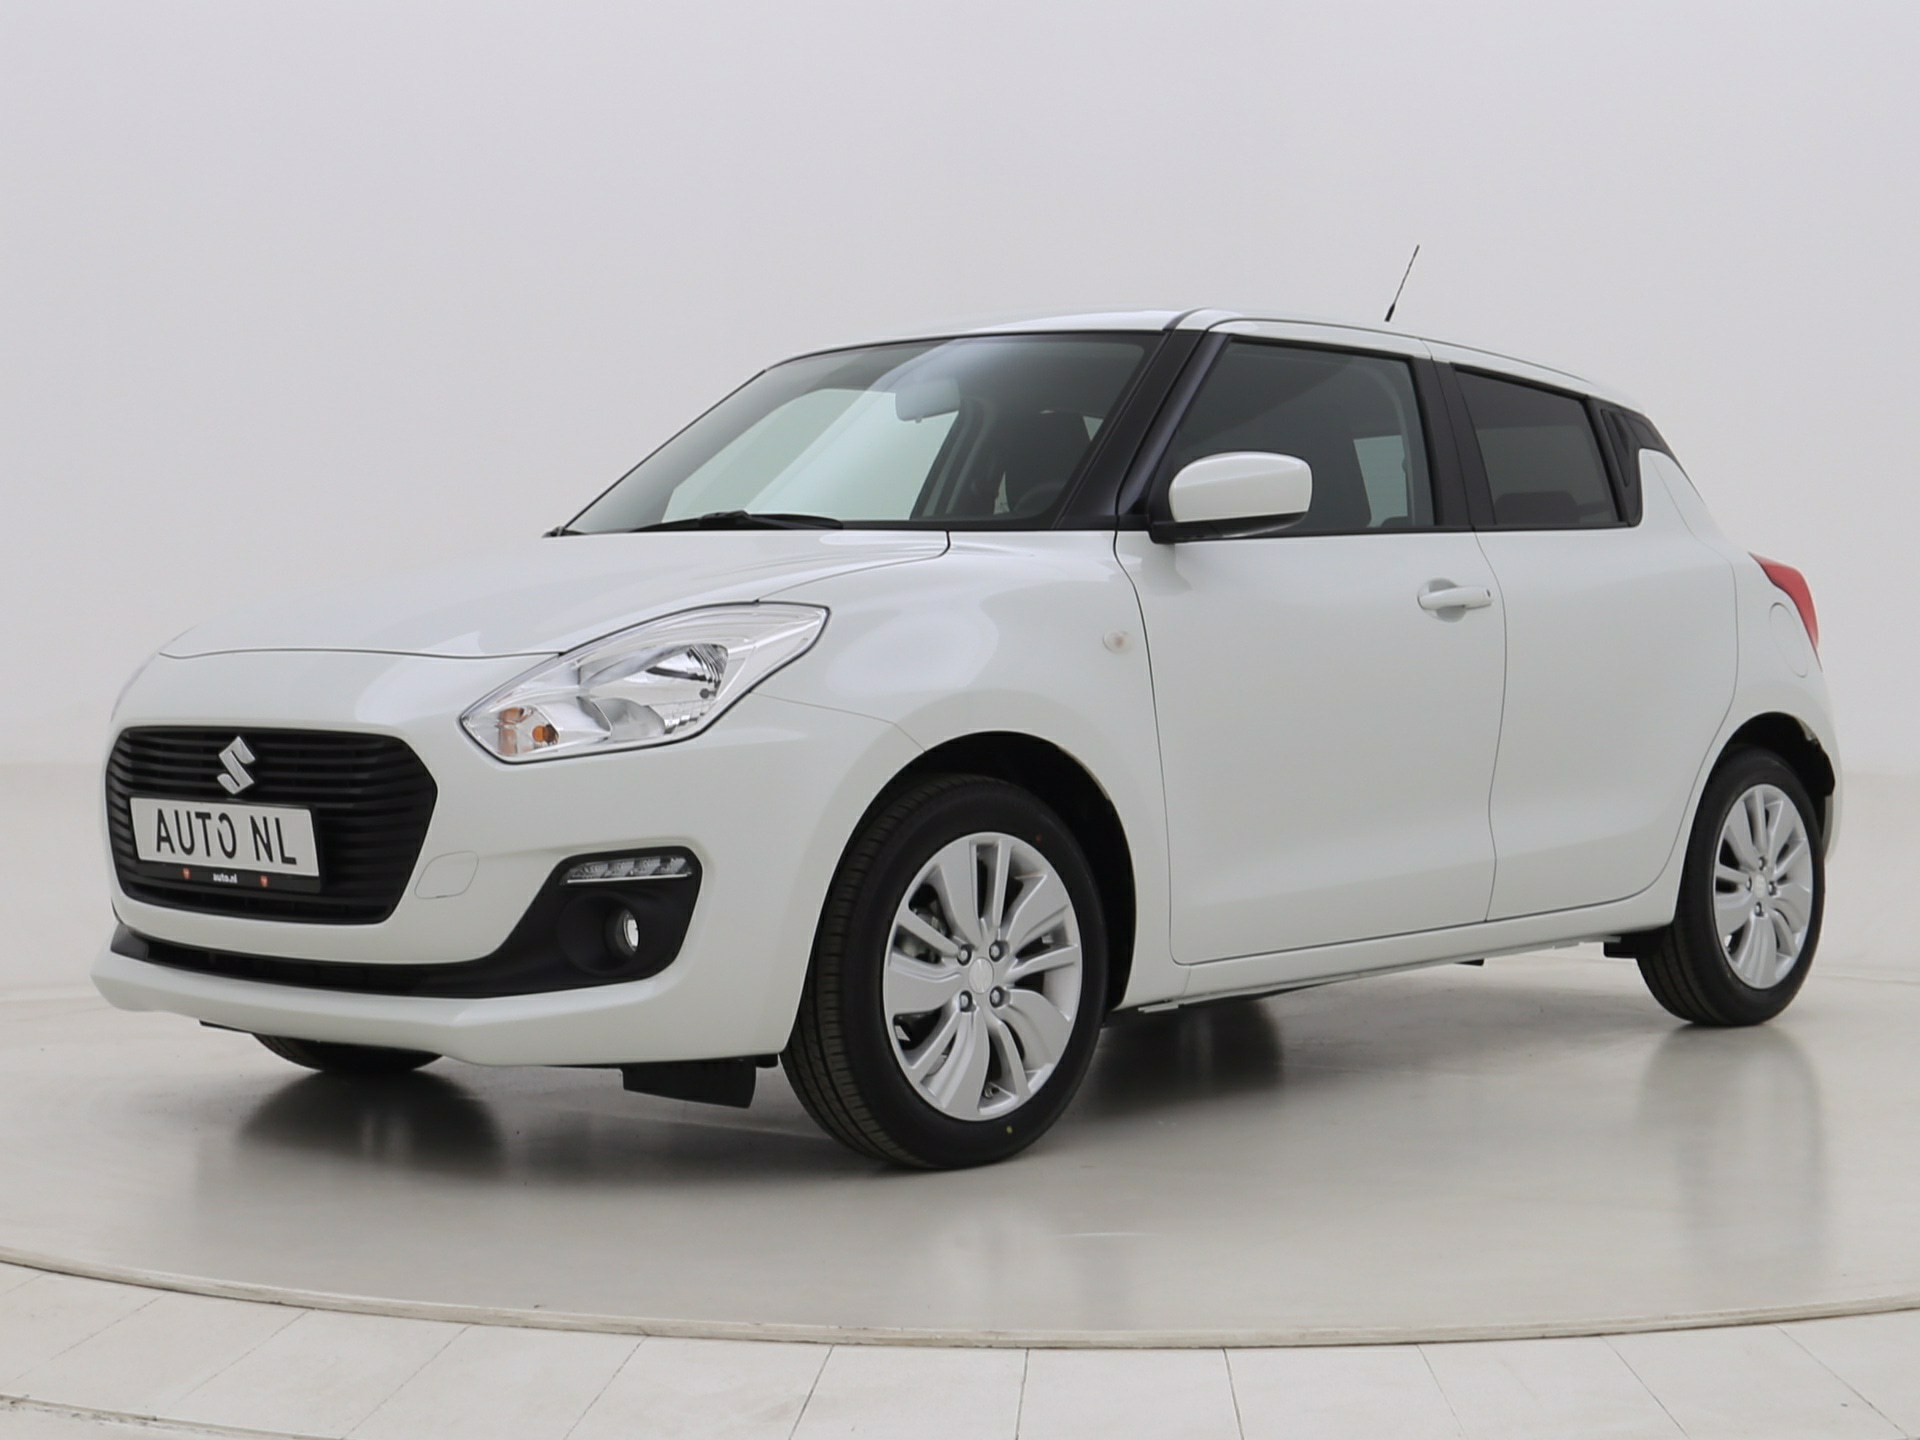 Suzuki Swift Occasion Lease 1.2 Select